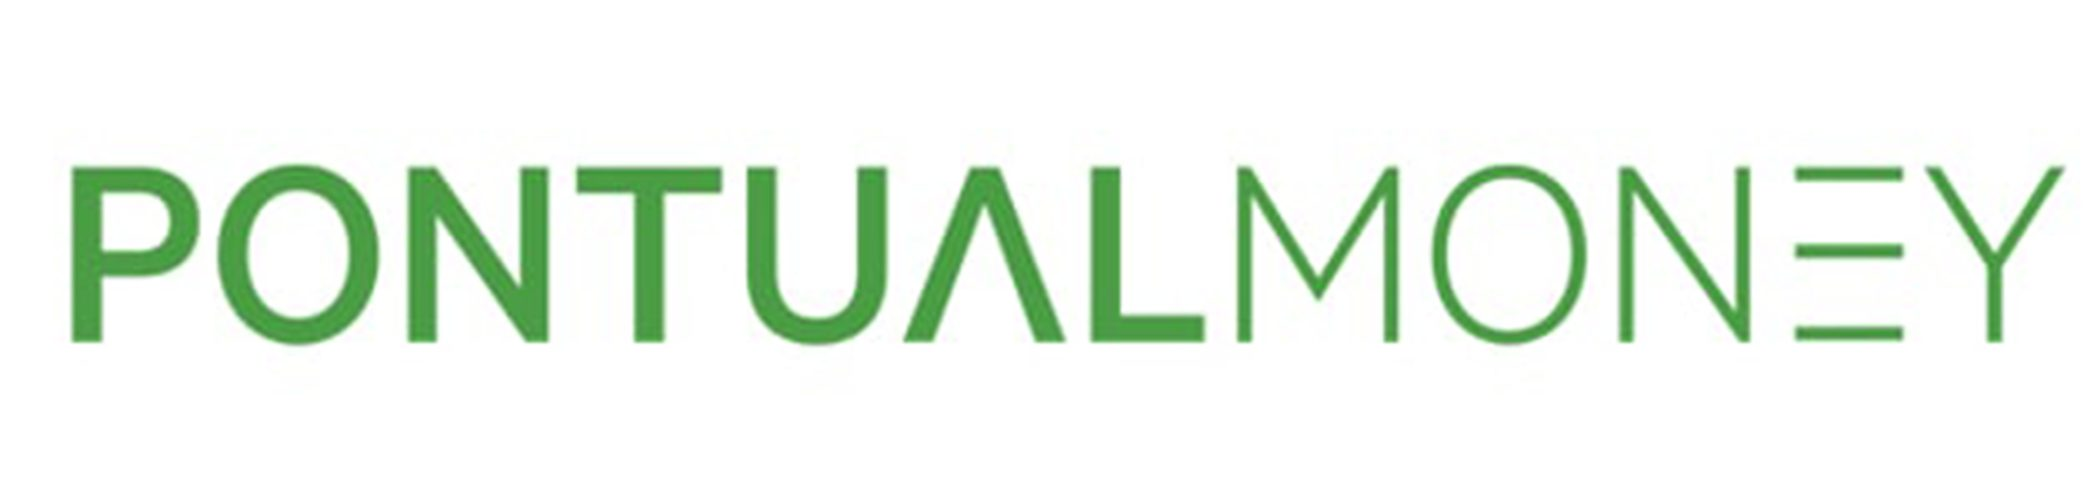 PontualMoney, partnering with Acuant - the best ID verification software